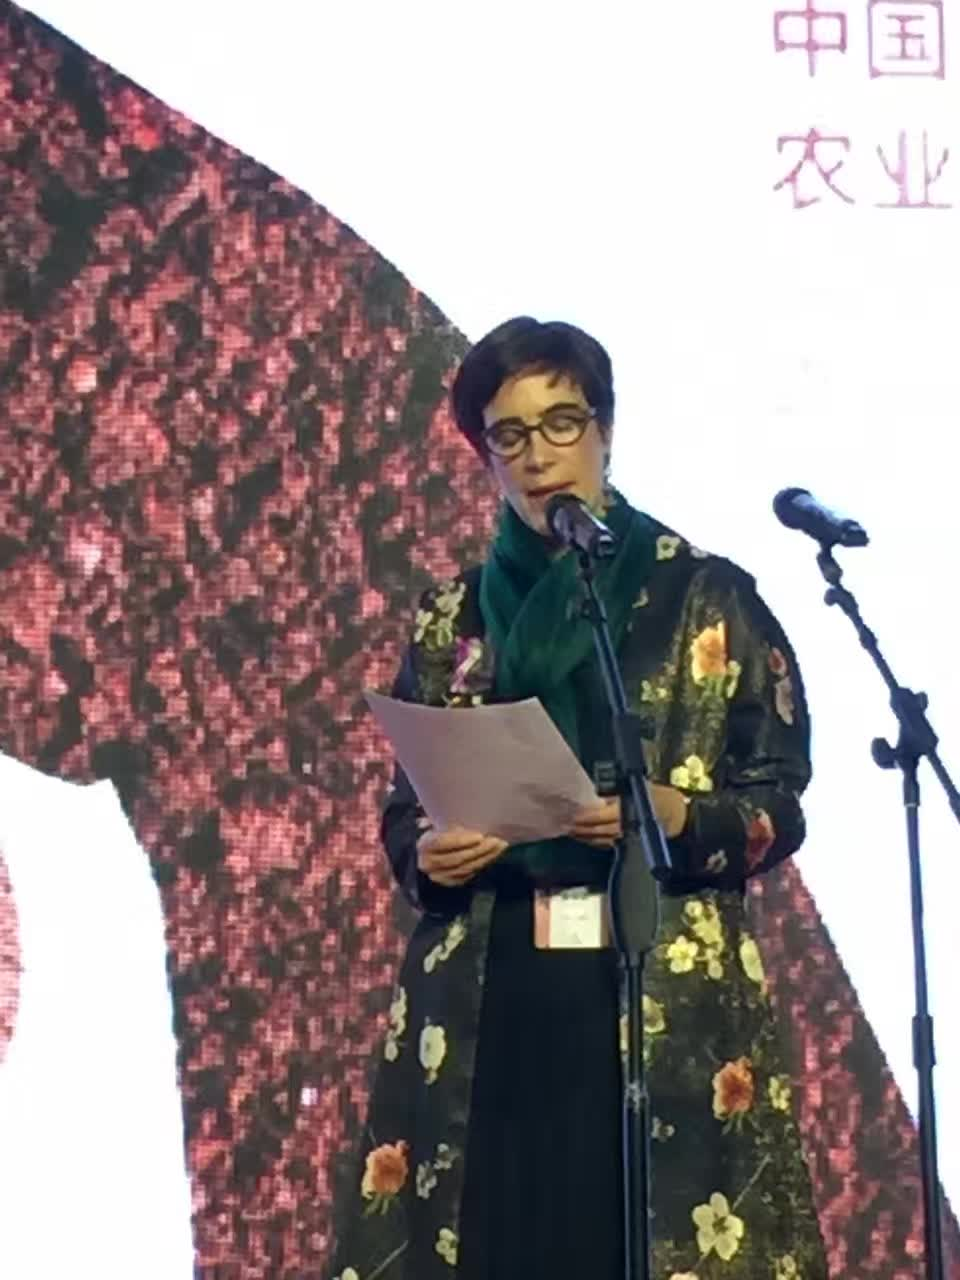 Curatorial Address, Henan Museum, photo credit: Guangzhen Zhou.